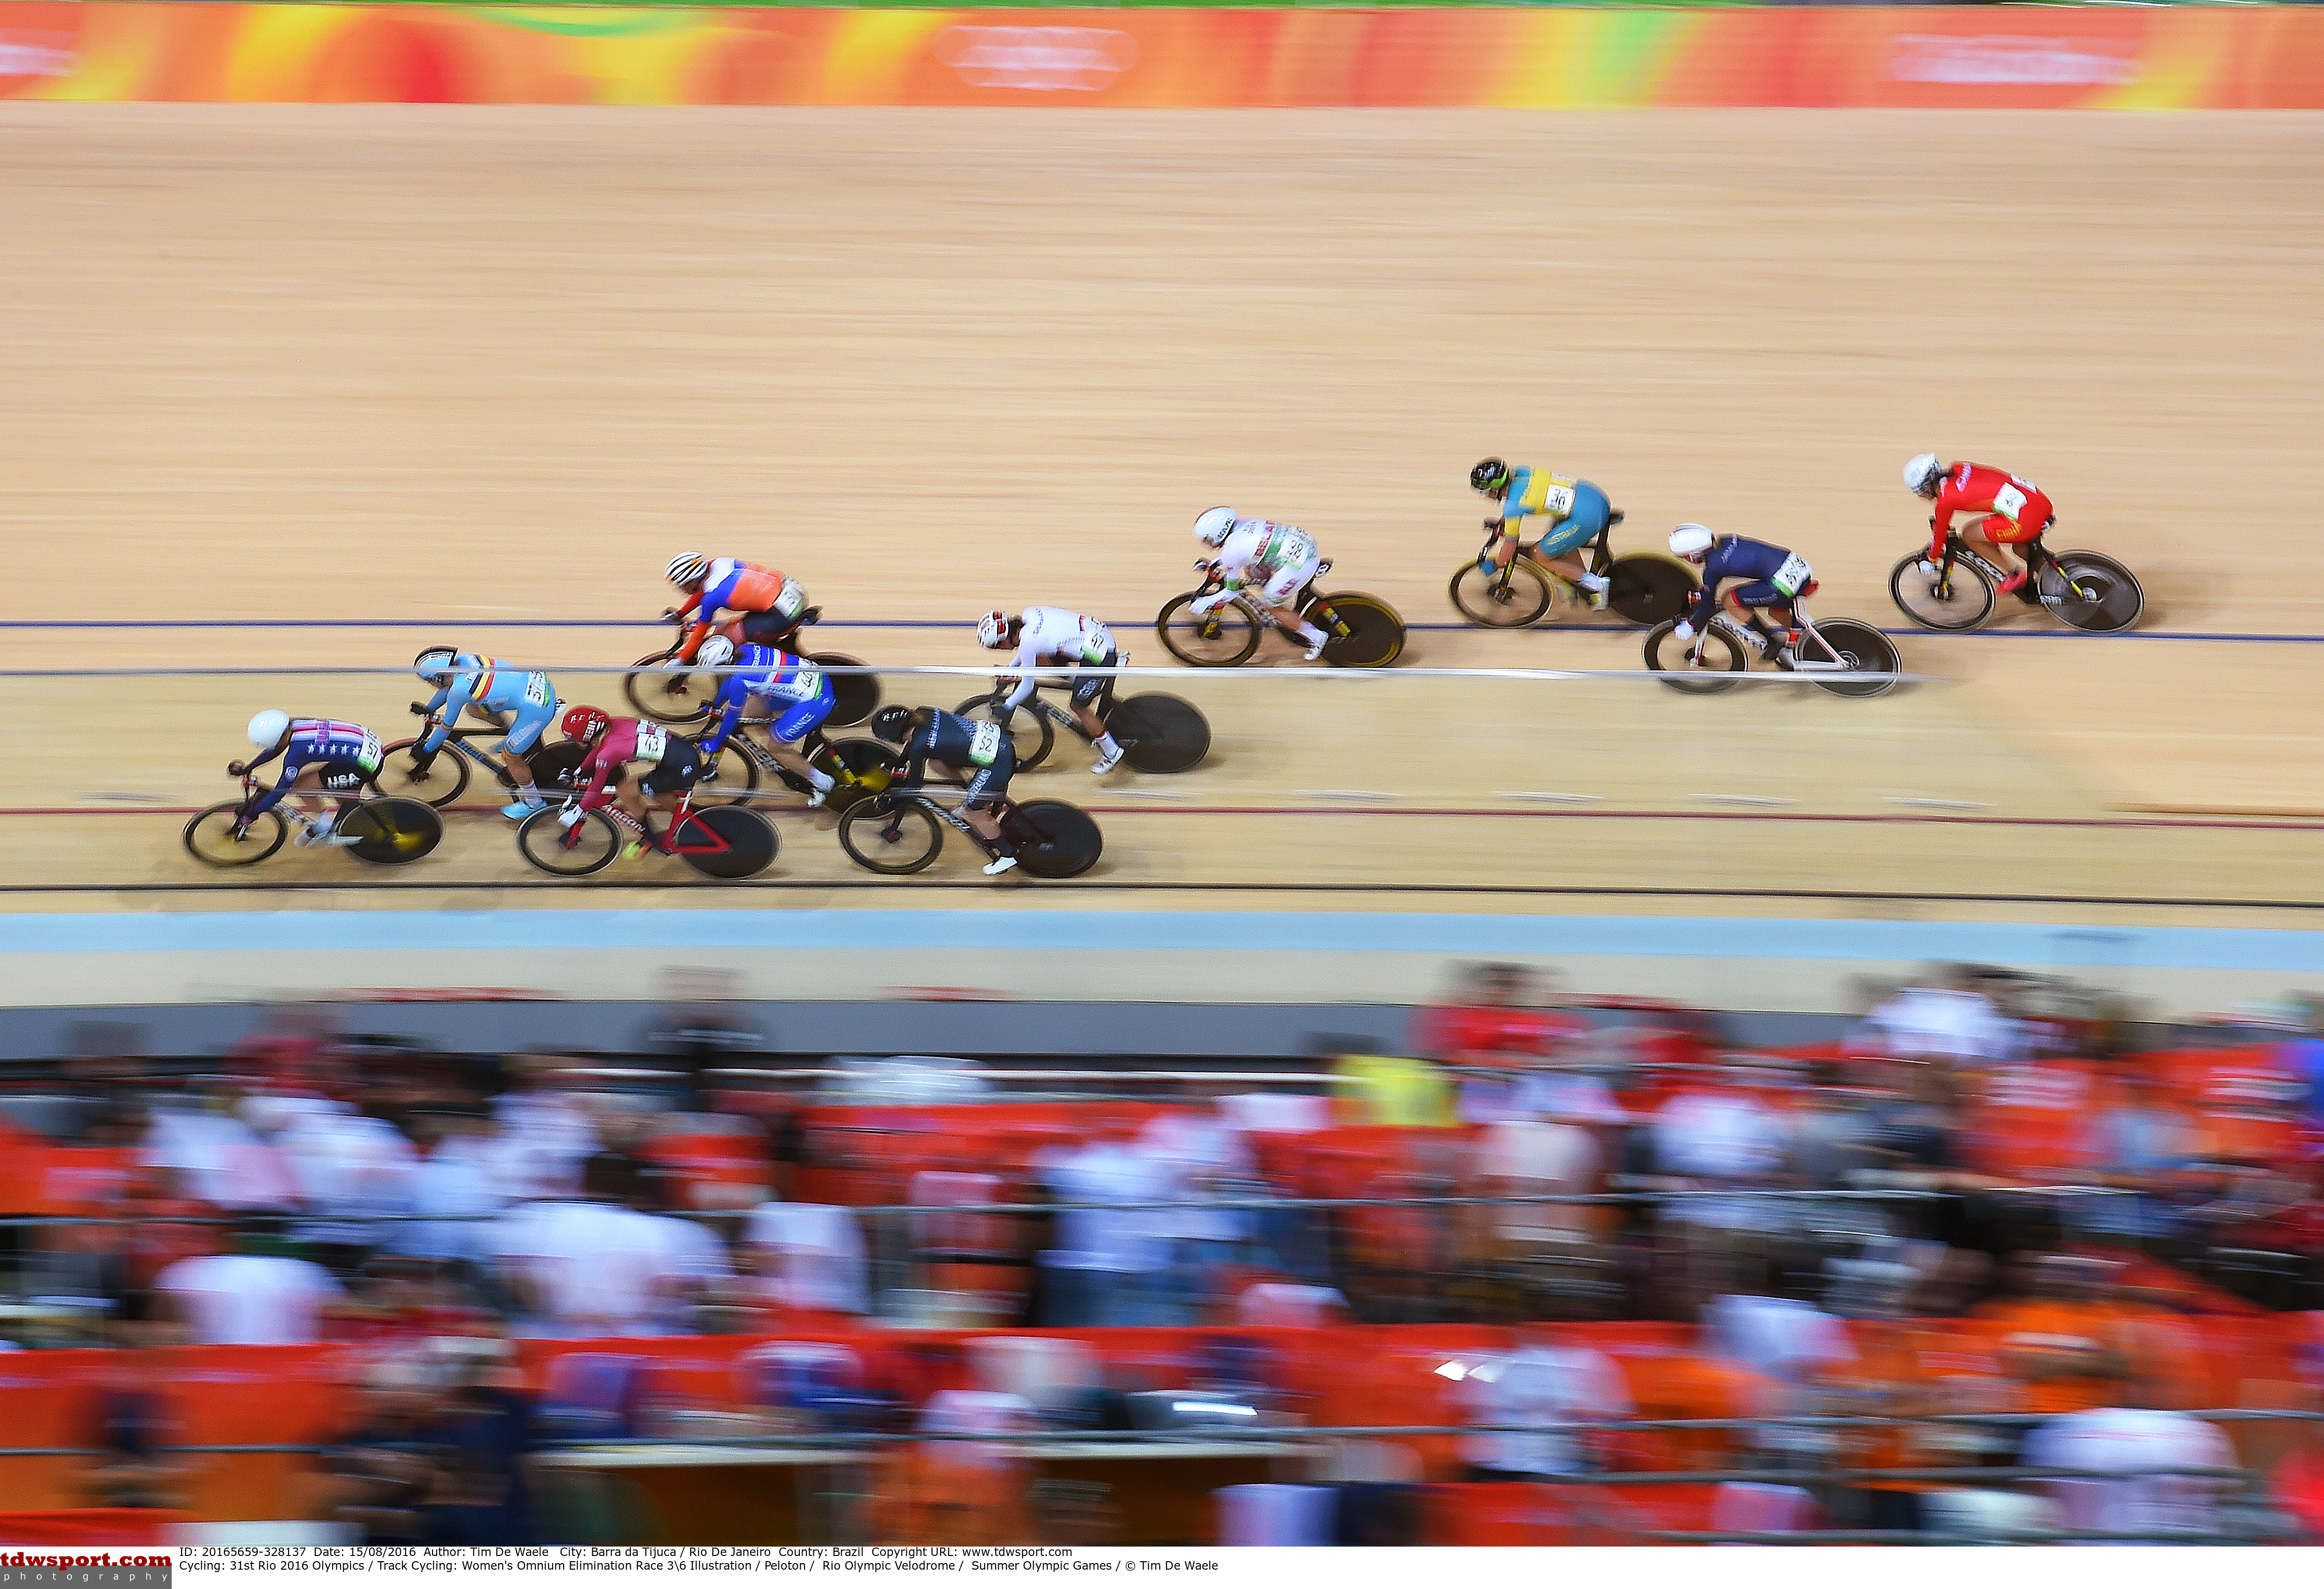 Cycling: 31st Rio 2016 Olympics / Track Cycling: Women's Omnium Elimination Race 36